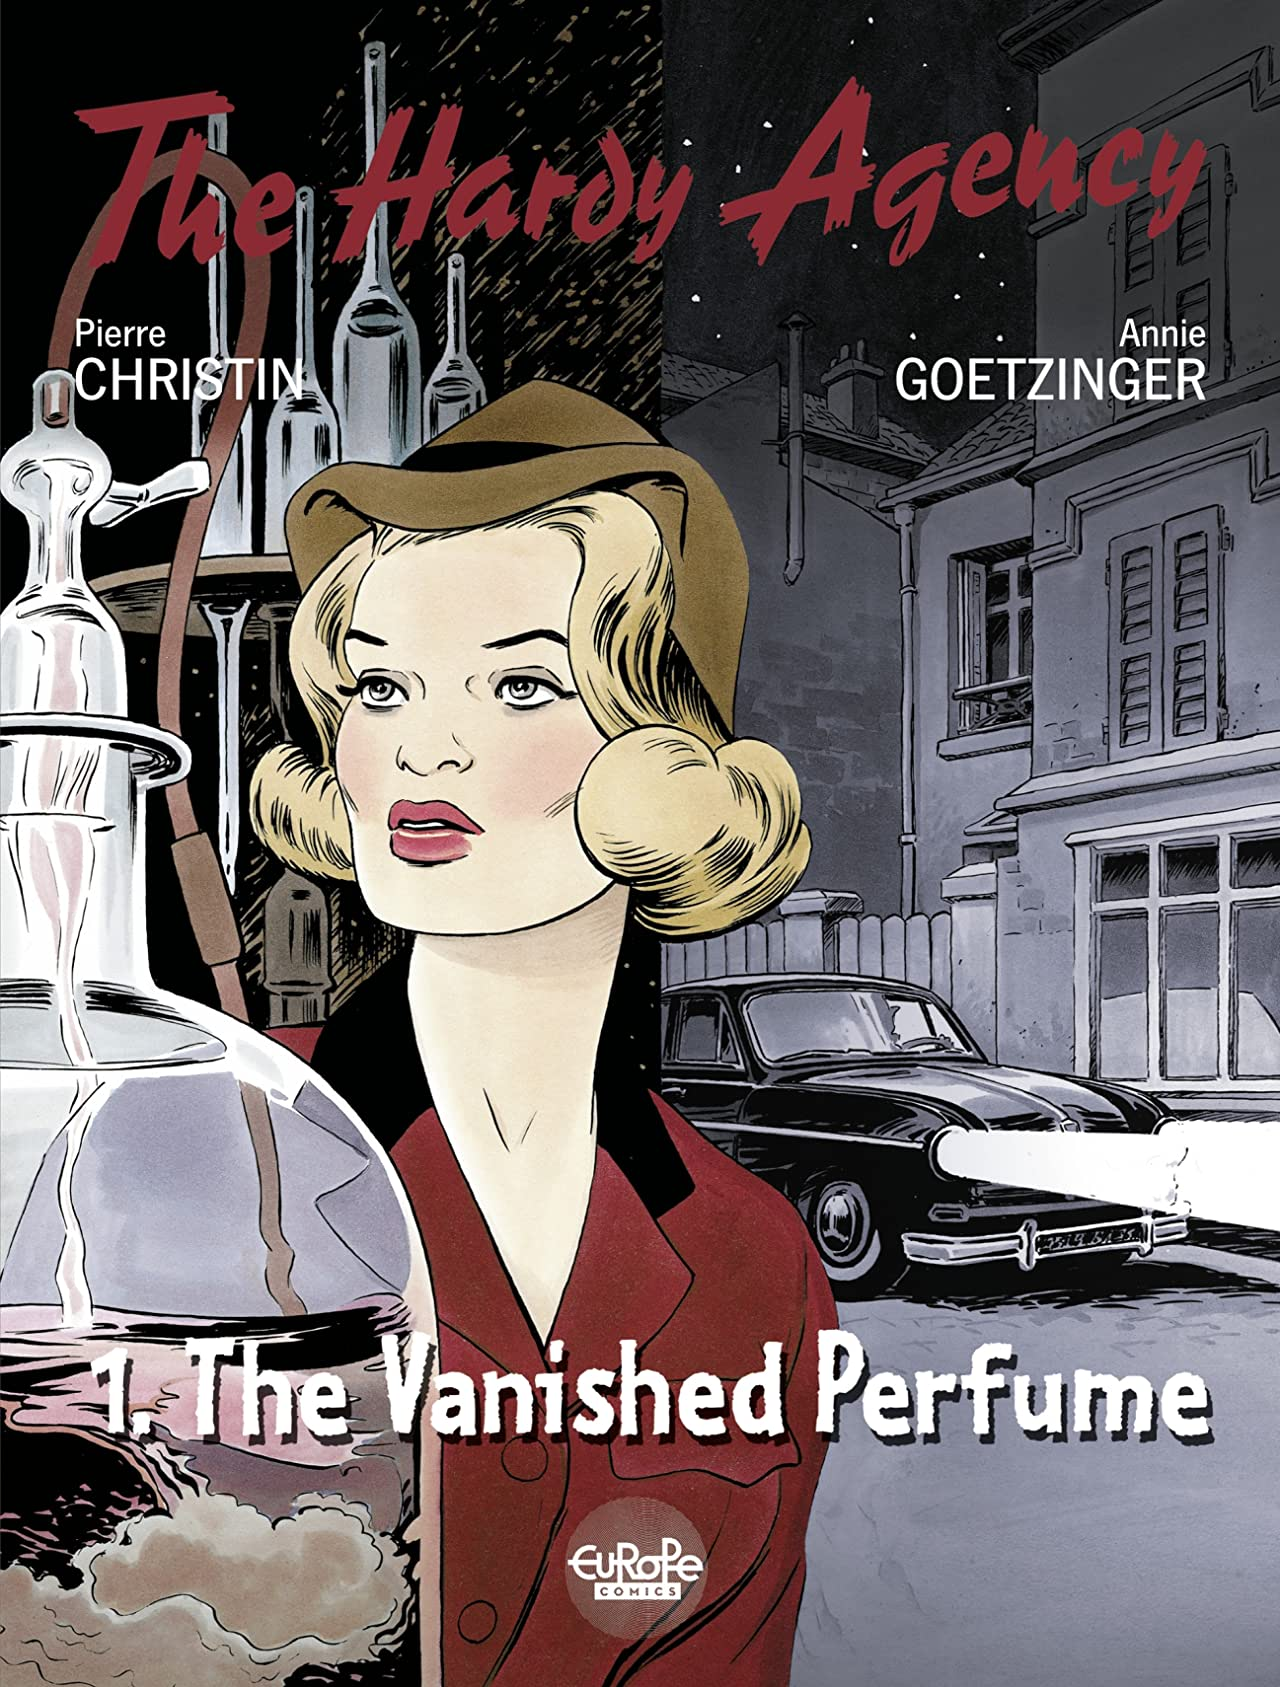 Hardy Agency Vol. 1: The Vanished Perfume